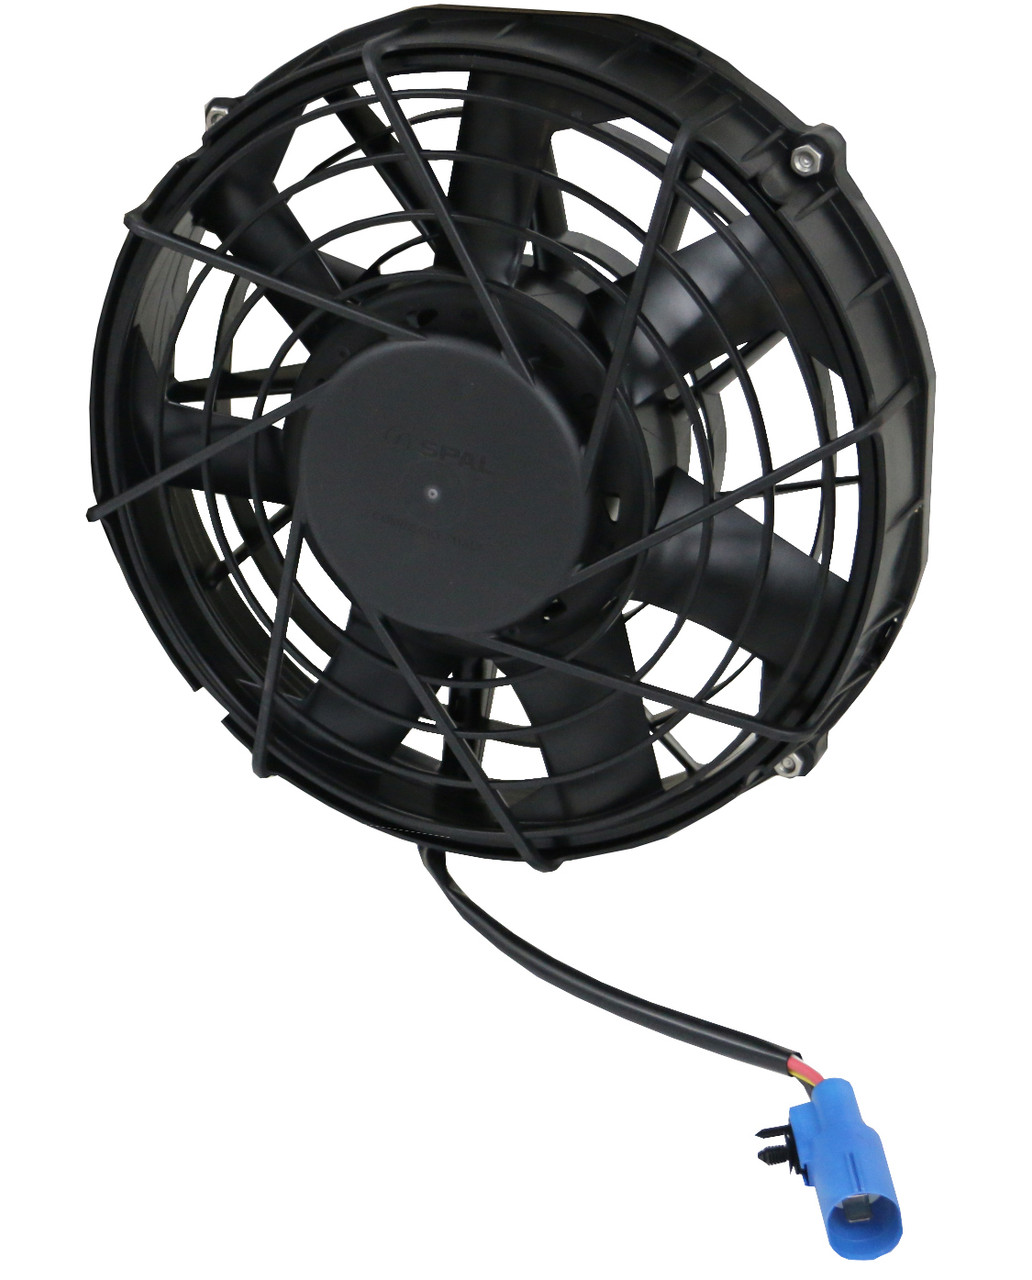 spal fans wiring diagram 1968 12  dual brushless spal pusher fan   wiring kit wizard cooling  12  dual brushless spal pusher fan